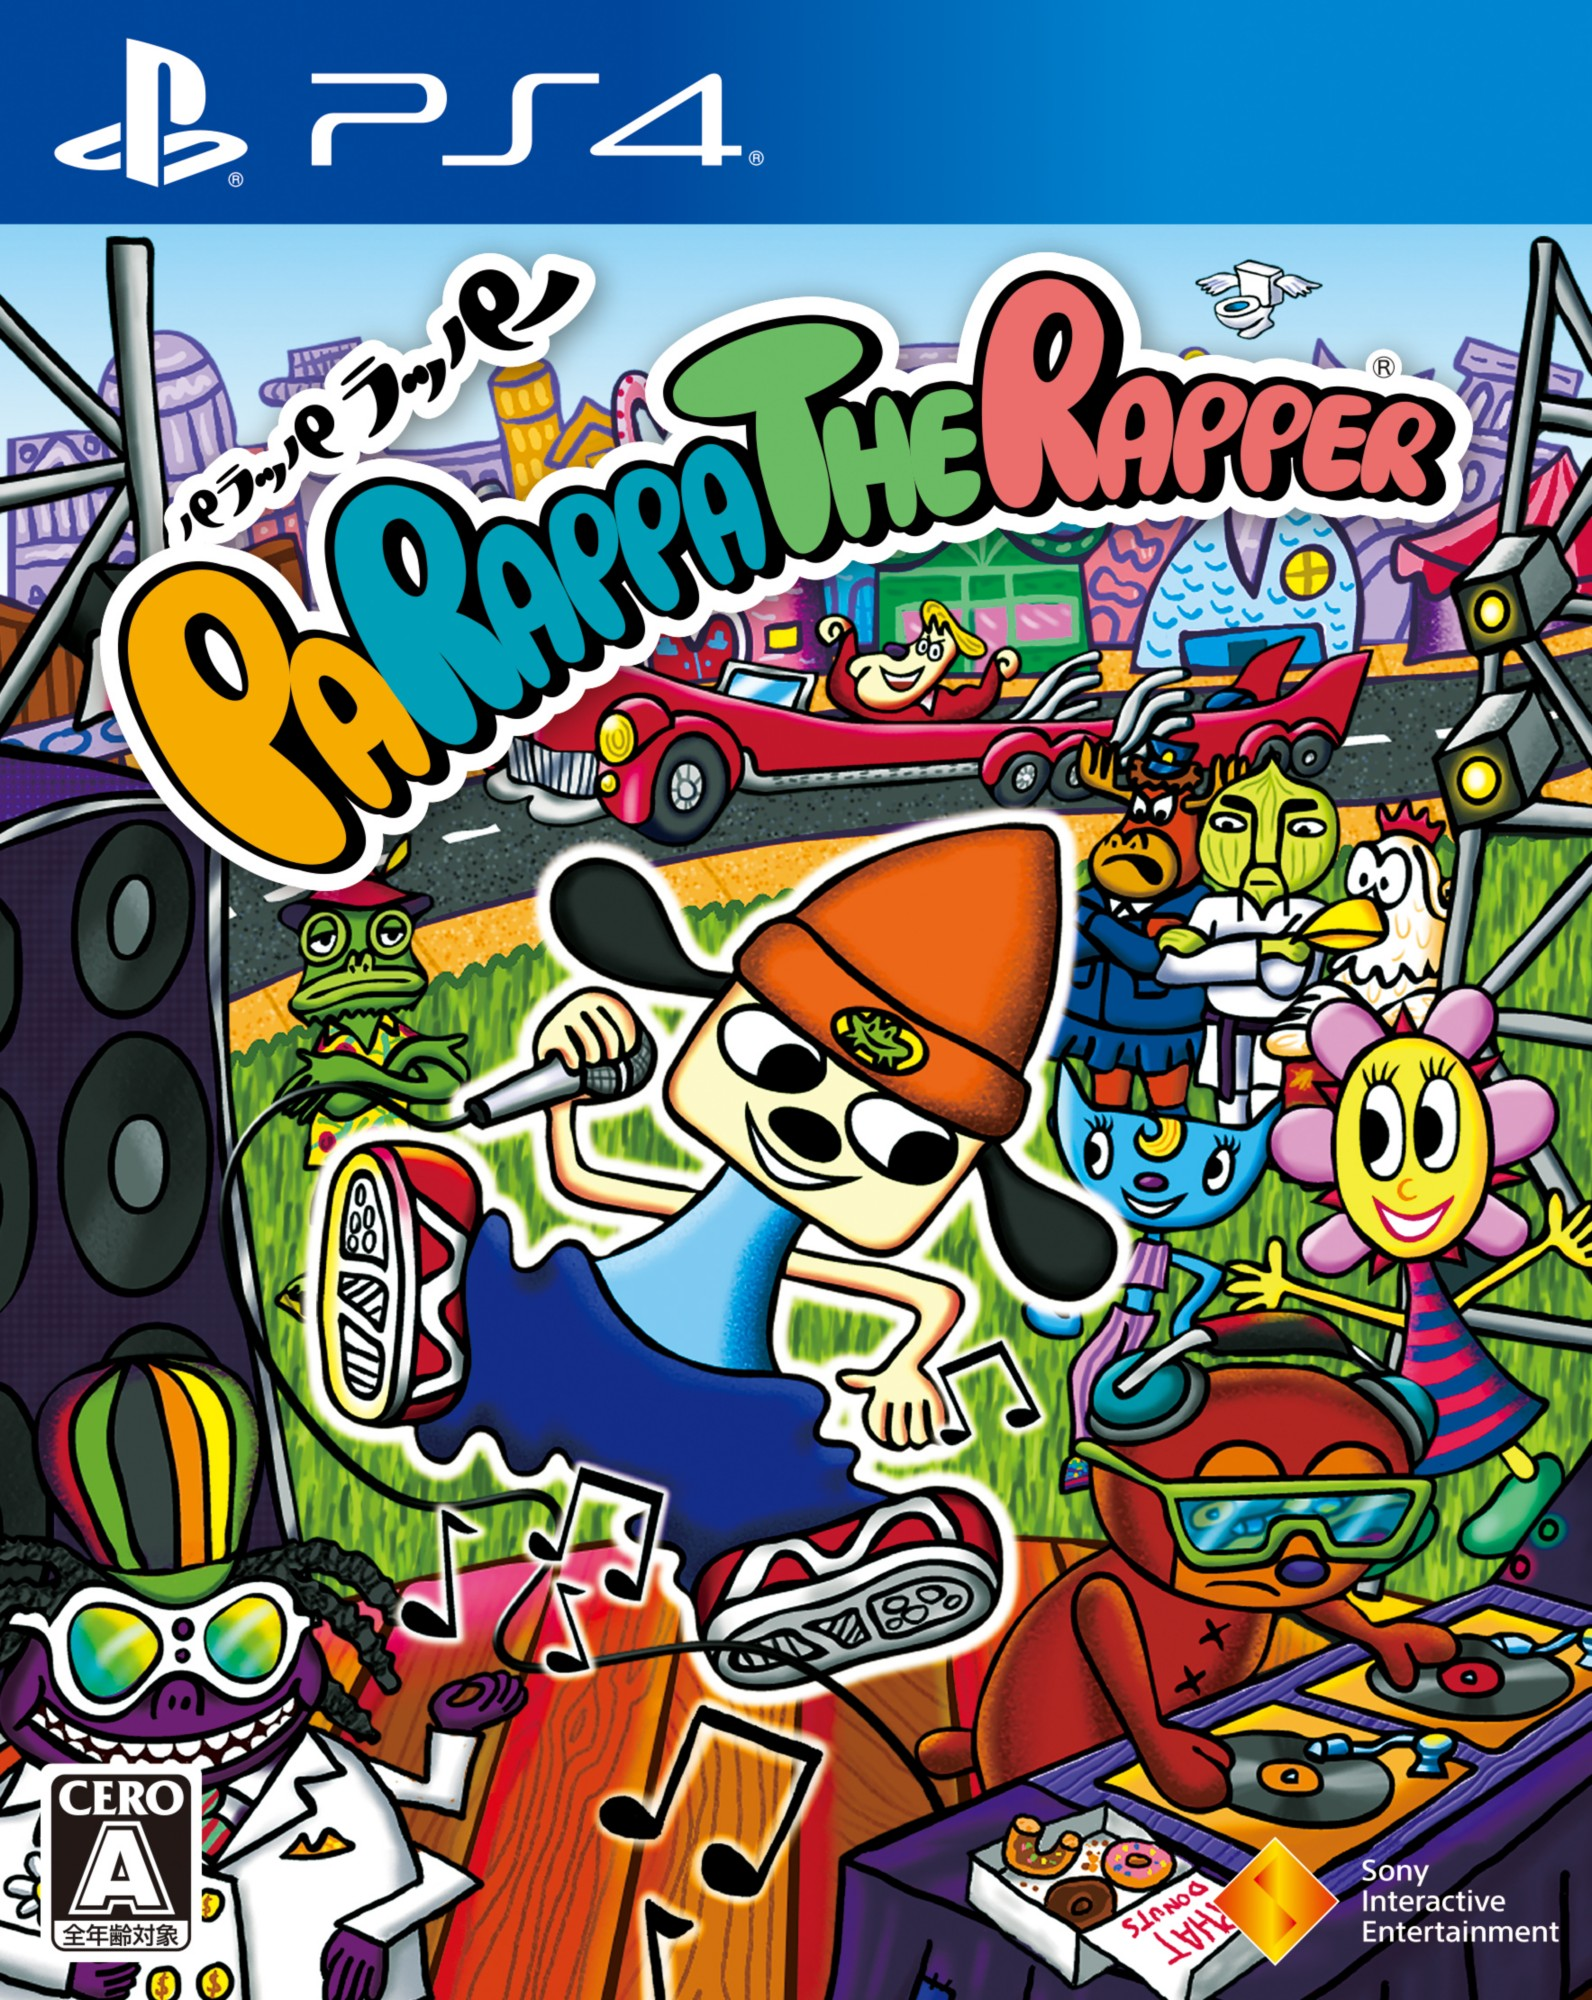 parappa the rapper remastered getting physical release in japan